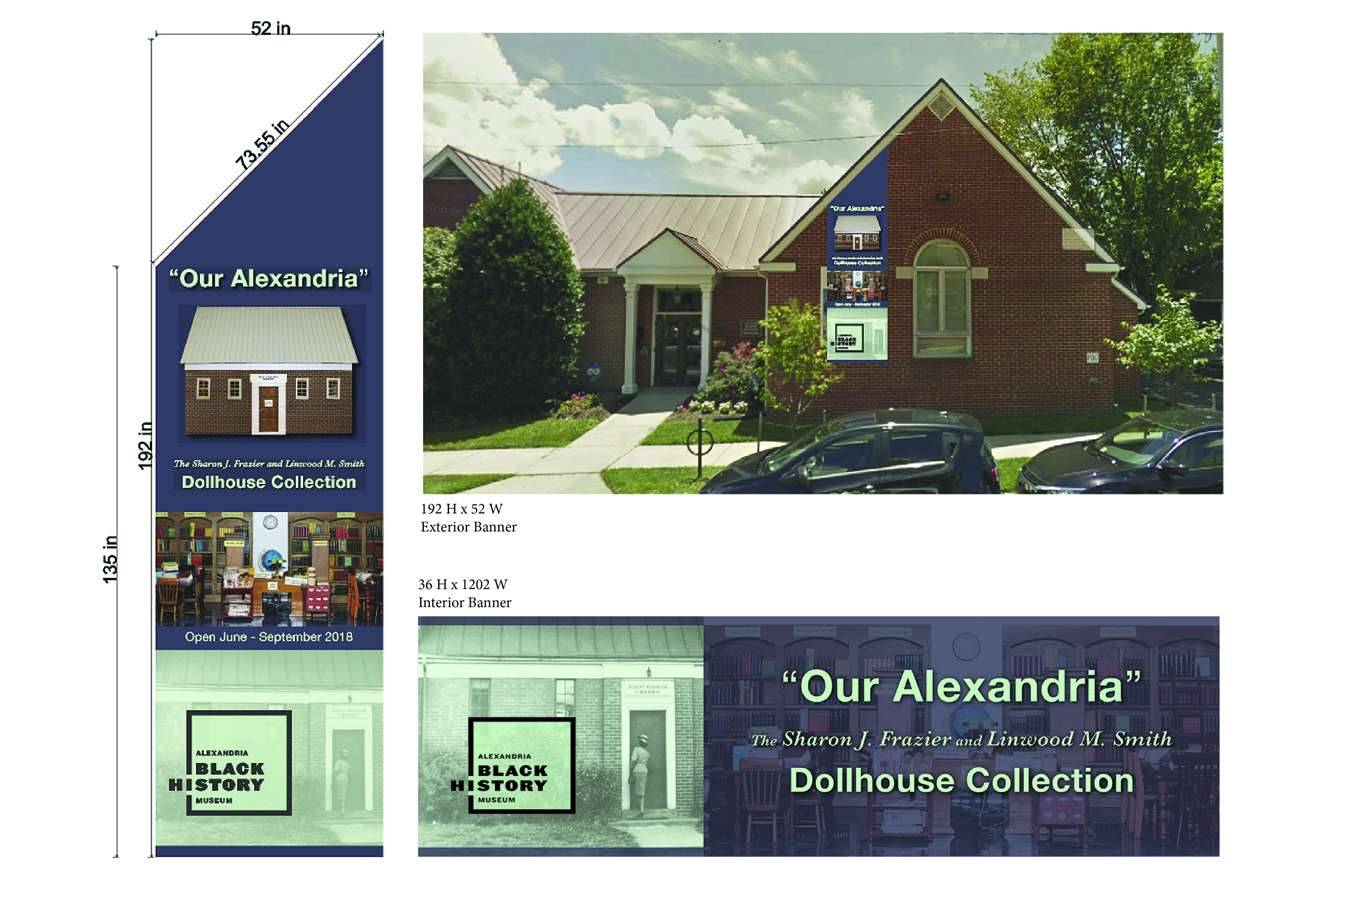 Dollhouse Banners : Exterior and Interior Banners